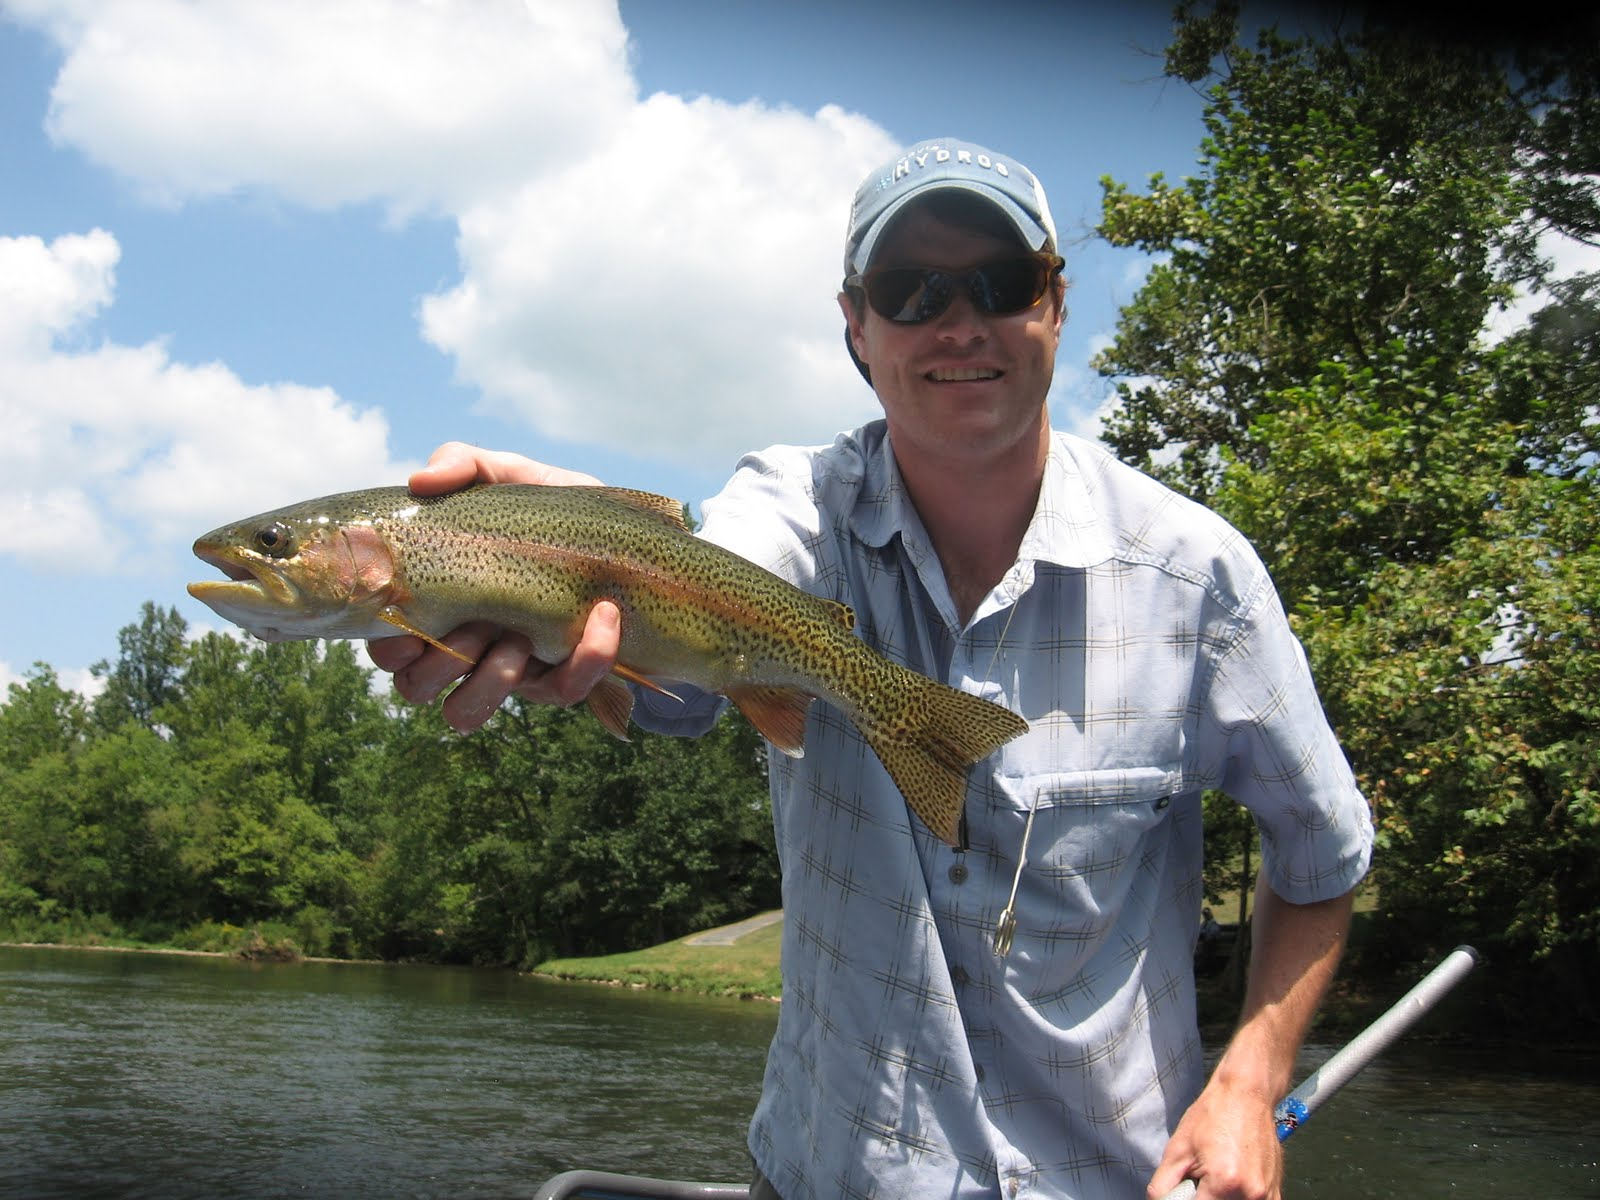 Brown trout fly fishing watauga river float trip august for Watauga river fishing